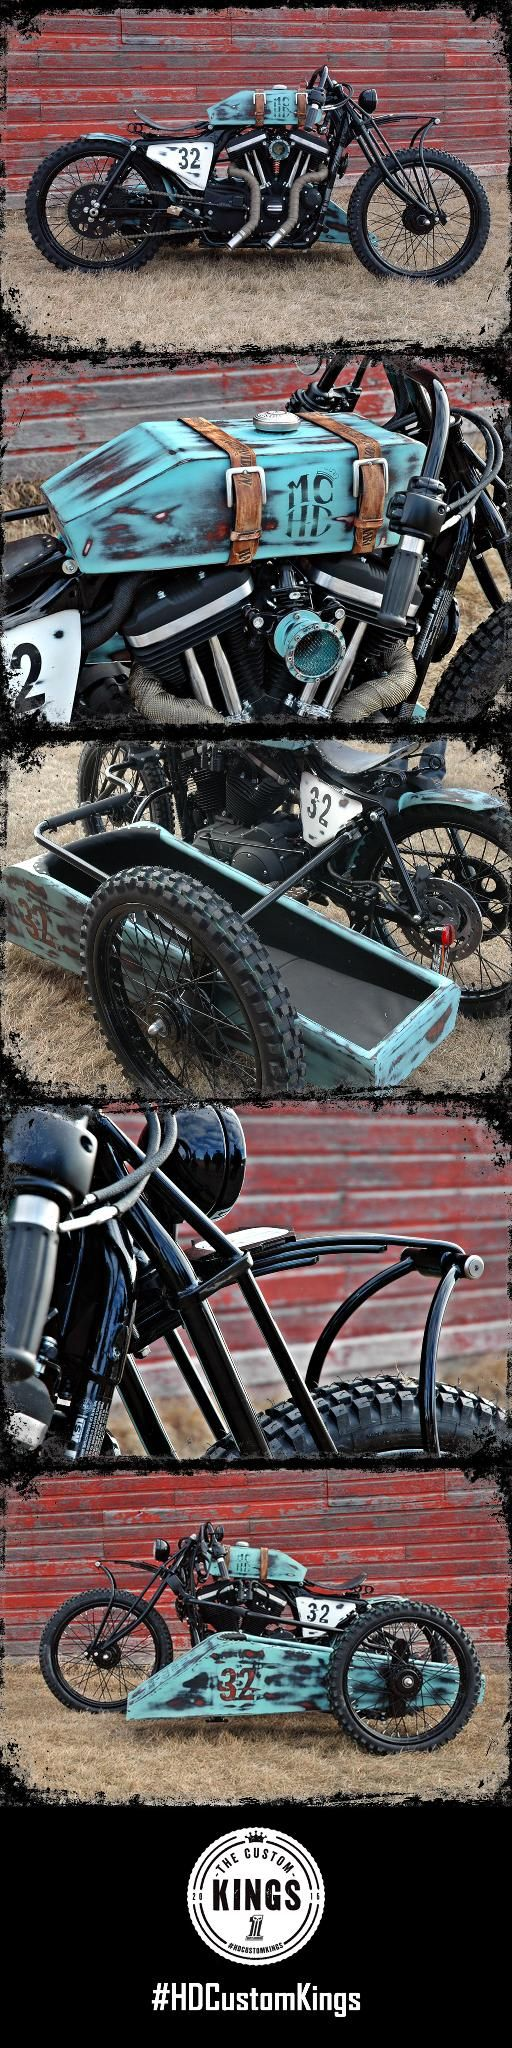 "Magic City Harley-Davidson's build, ""Bonnie & Clyde"", was inspired by the Harley race bikes of the early 1900's. 